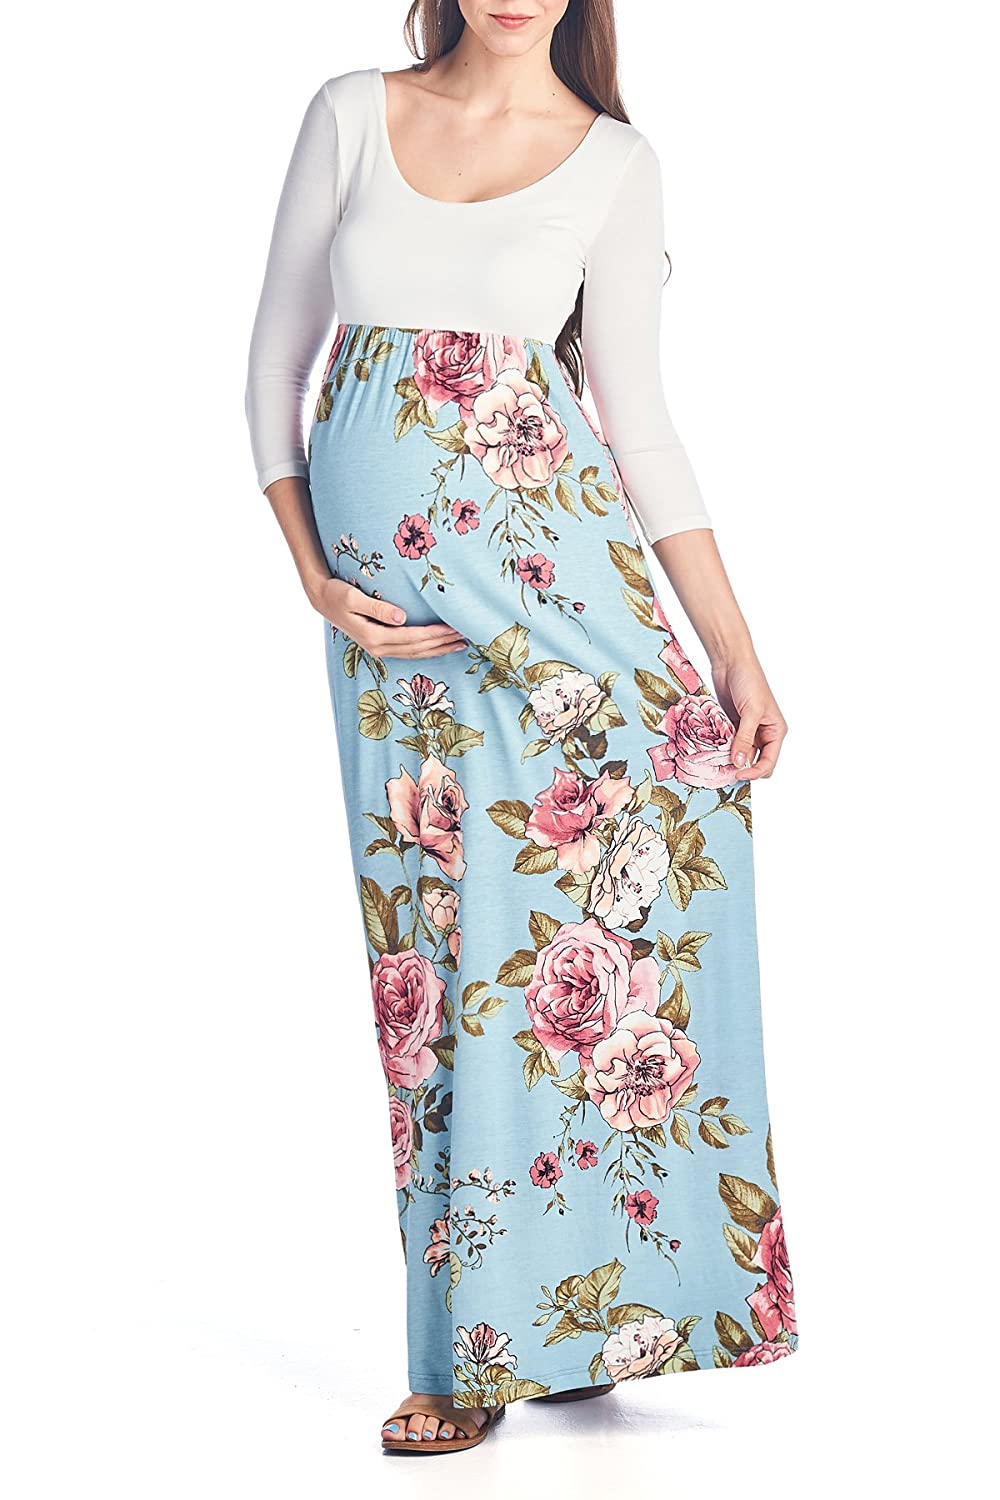 Beachcoco Women's Maternity 3/4 Sleeve Flower Printed Maxi Dress Made in USA